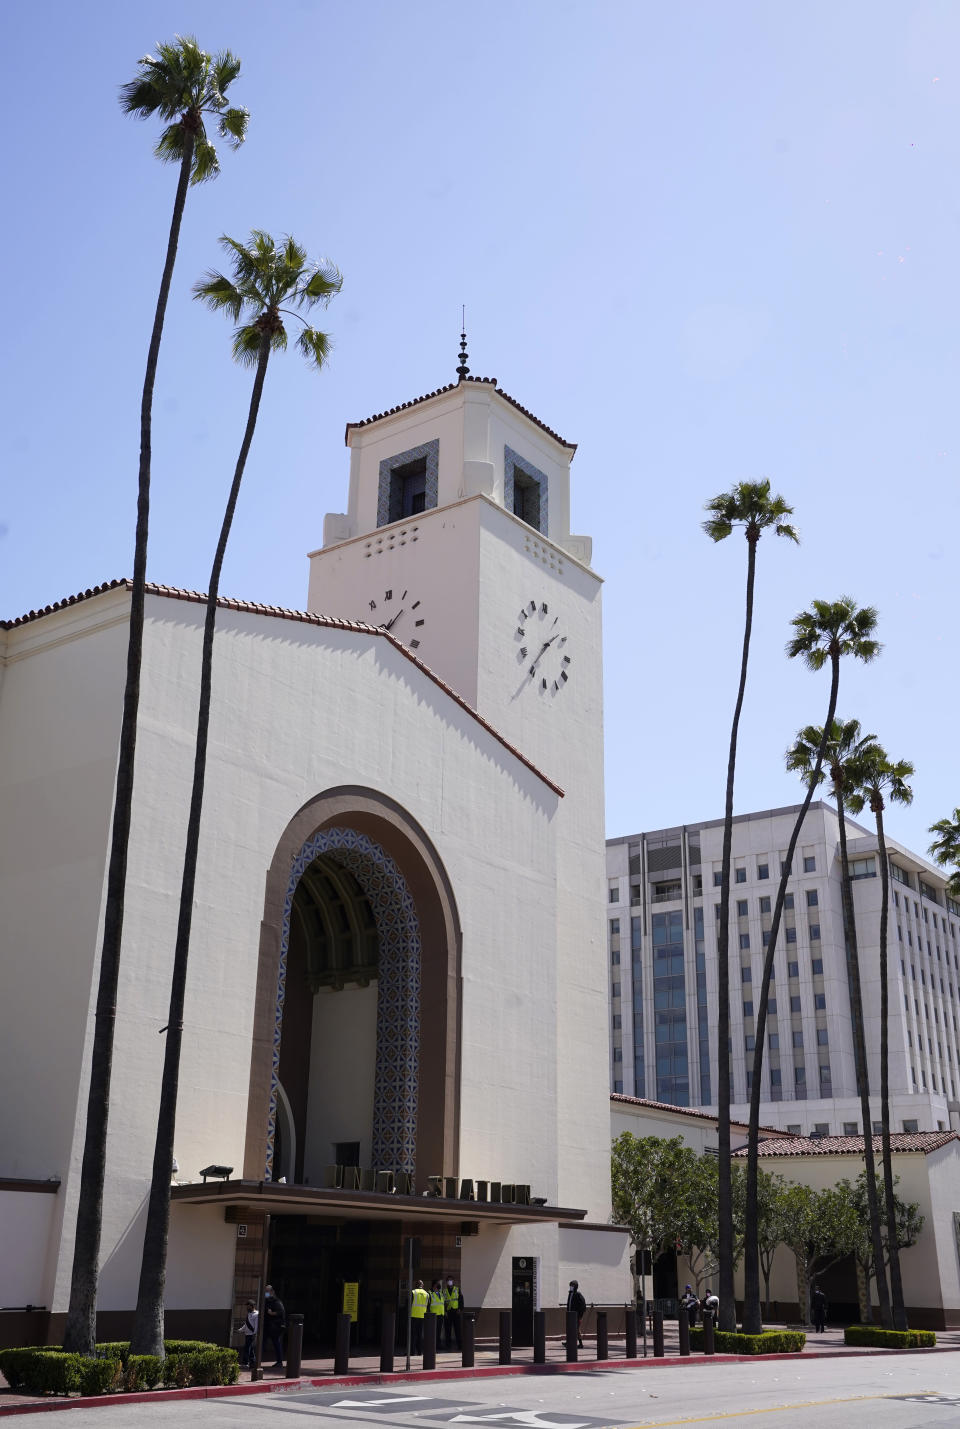 The exterior of Union Station in Los Angeles appears on March 23, 2021. The Oscars are headed to the historic site for the first time this year. With wide open spaces and 65-foot high ceilings, it's ideal for a big crew and cameras. It's been used in car commercials, reality shows and procedurals. But its beamed ceilings, Spanish tile floors and regal bronze chandeliers really shine in cinema where it's played train stations, banks, police stations, clubs and airports. (AP Photo/Chris Pizzello)